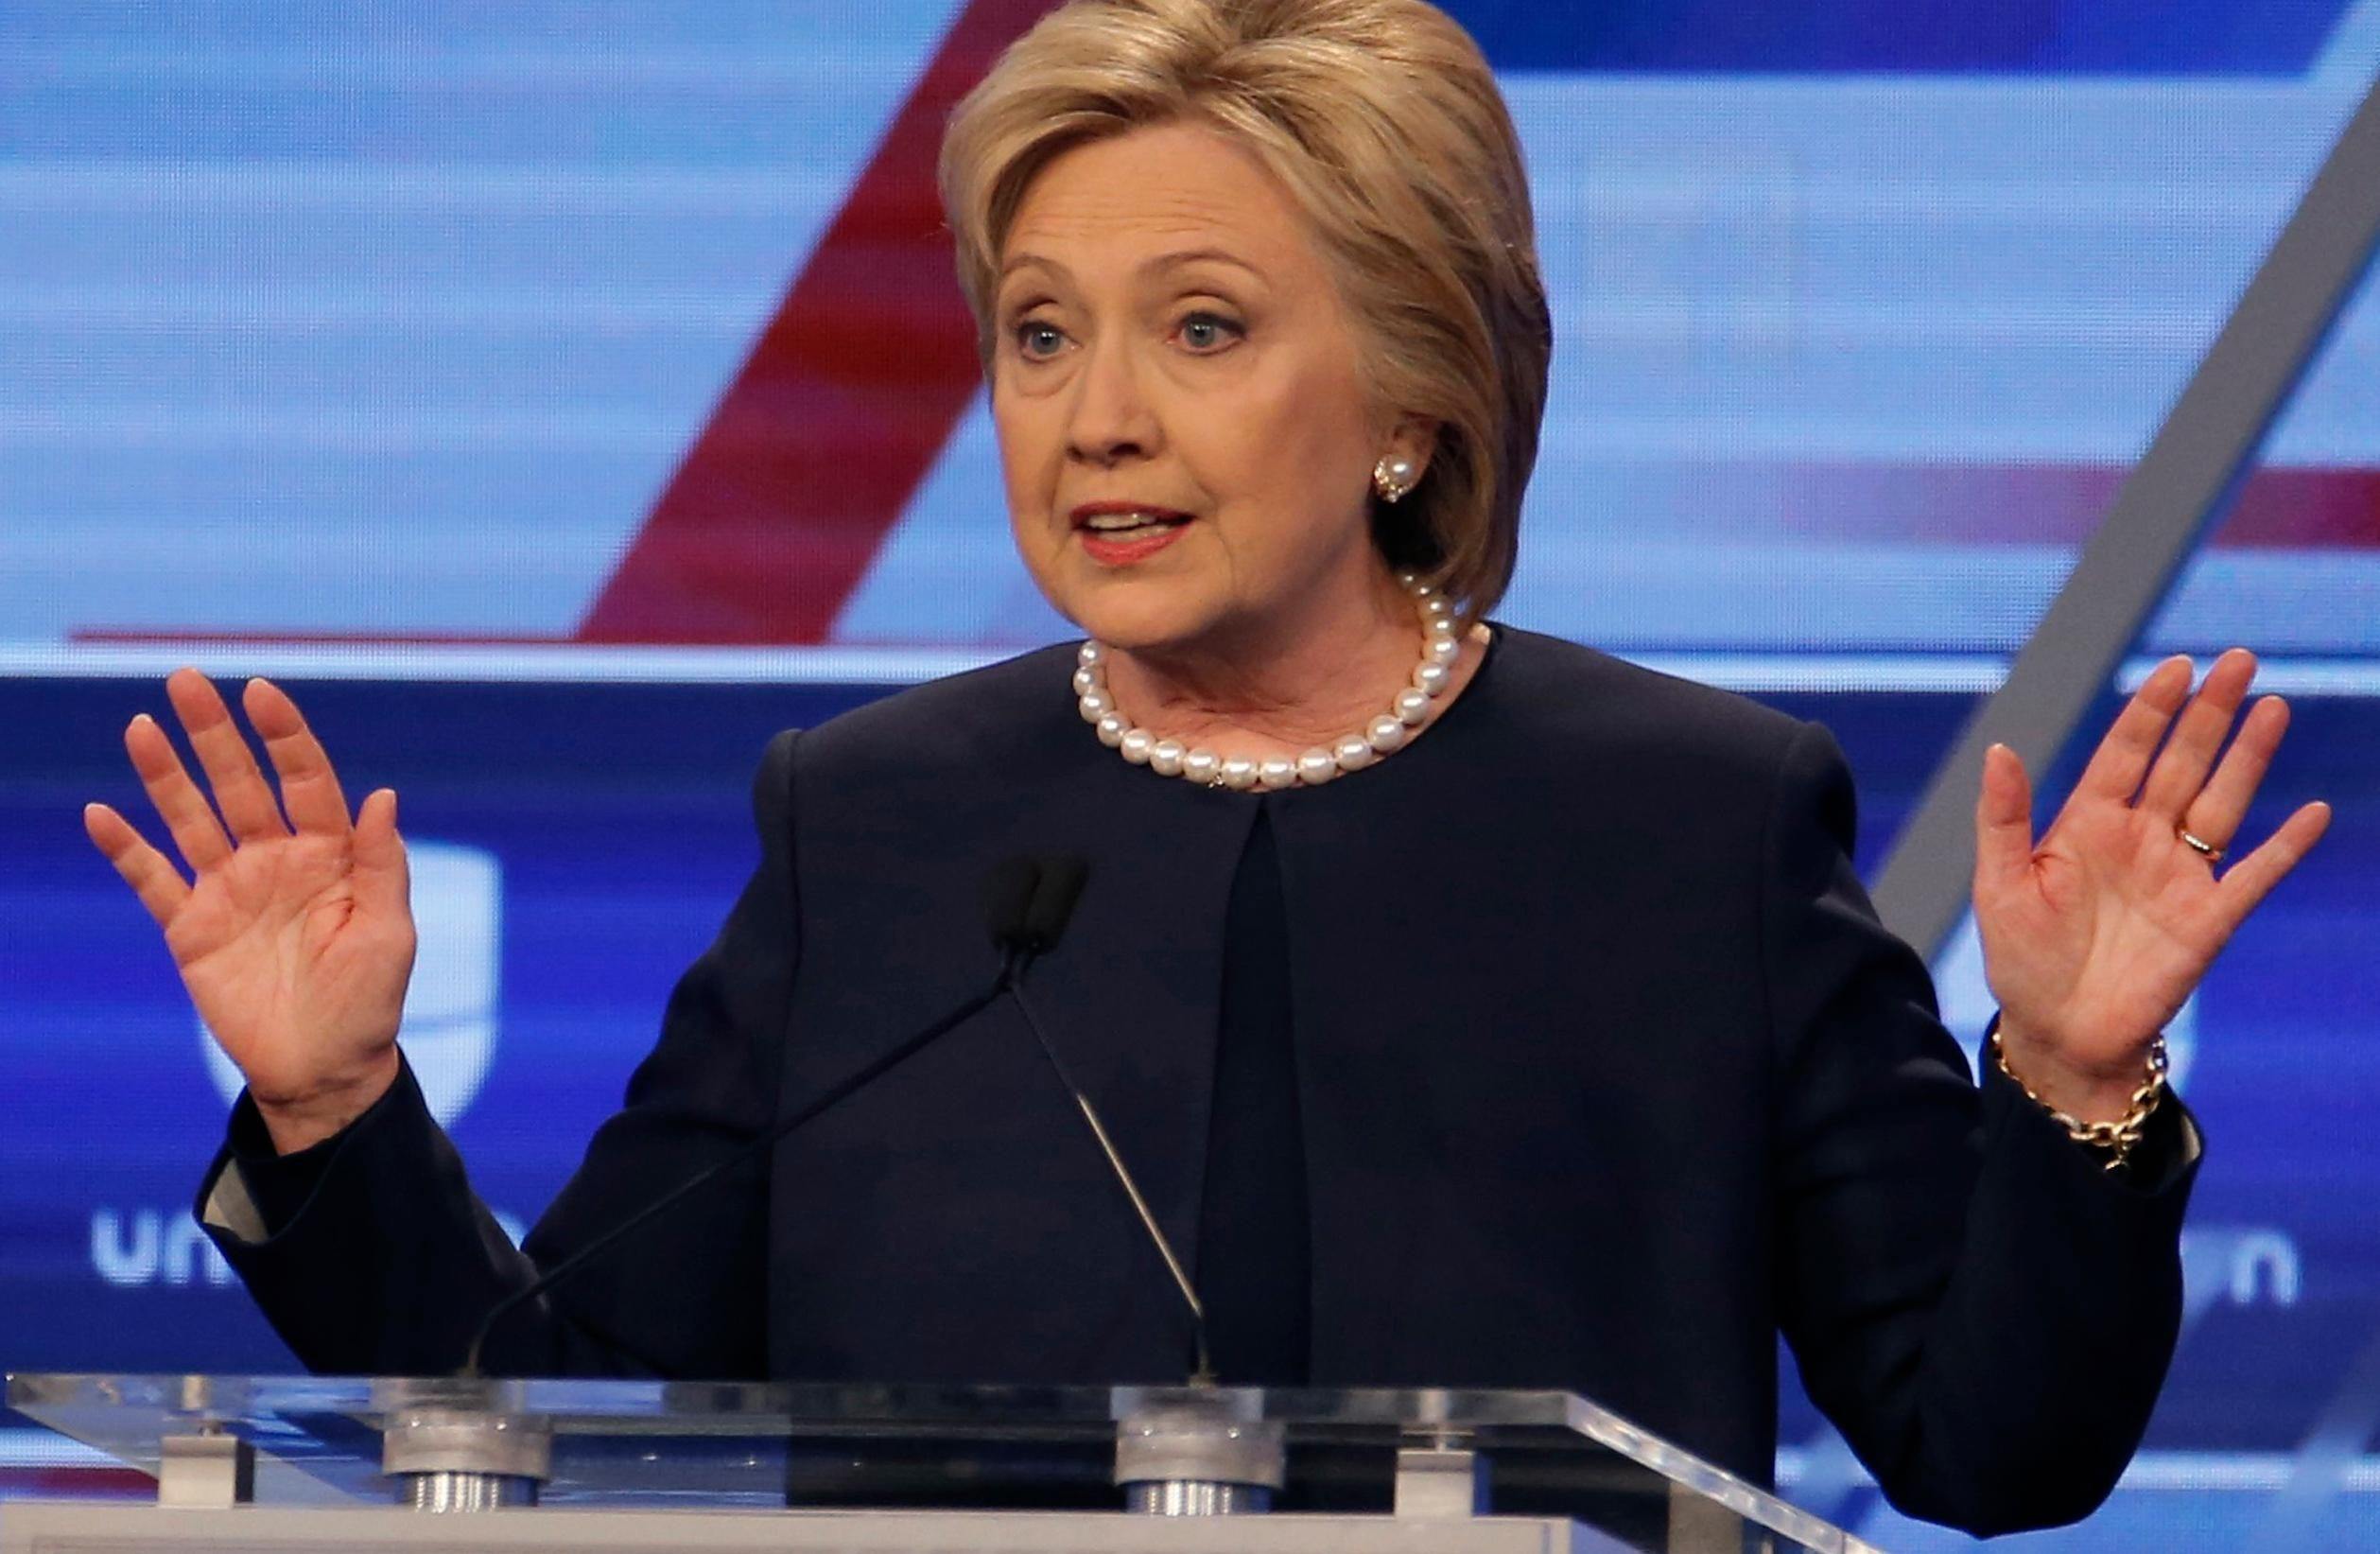 Hillary Clinton roundly dismissed a question at the Democratic debate in Miami asking whether she would step down if she was indicted over the use of a private email server when she was secretary of state.